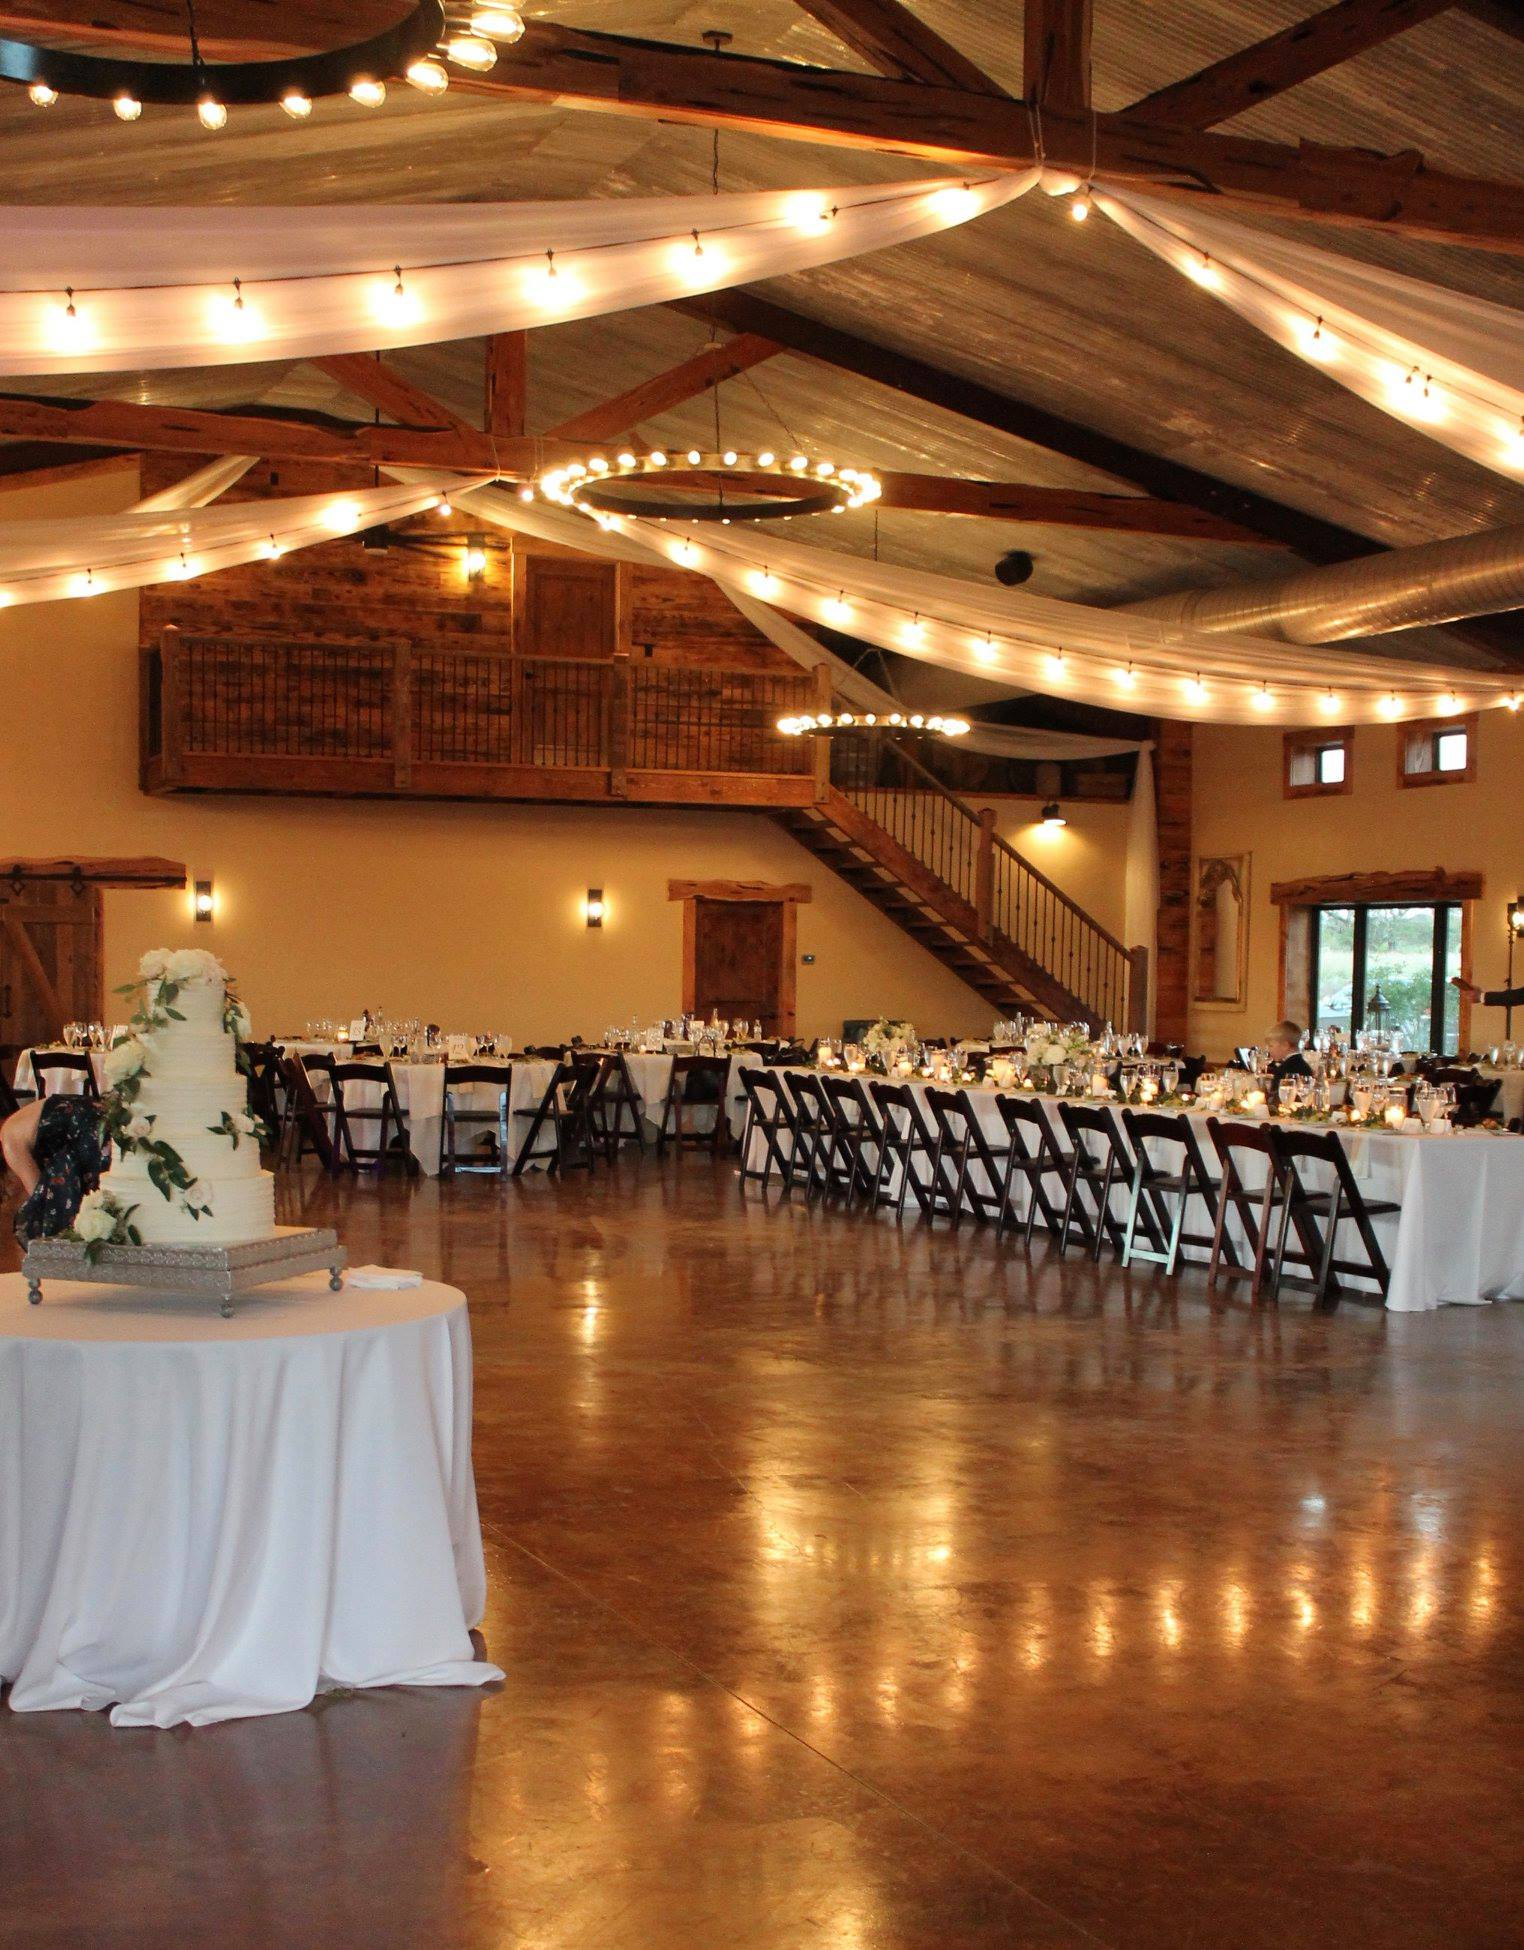 The Venue - The Venue at Rafter E Ranch is a rustic yet elegant lodge nestled on a private working ranch only minutes from Fredericksburg. The ranch harbors towering 100-year-old oak trees, miles of the blue-green waters of winding Bear Creek, as well as panoramic views of the rolling Texas Hill Country in the Pedernales Valley. The Venue offers beautiful indoor and outdoor ceremony sites to best accommodate all of your needs. If you are looking for a stunning view of the Texas Hill Country to wow your guests, we are the venue for you! Our spacious venue is 7,500 square feet and can easily accommodate 300 plus guests. Private suites for the wedding parties are available with the bridal suite upstairs overlooking the main room.